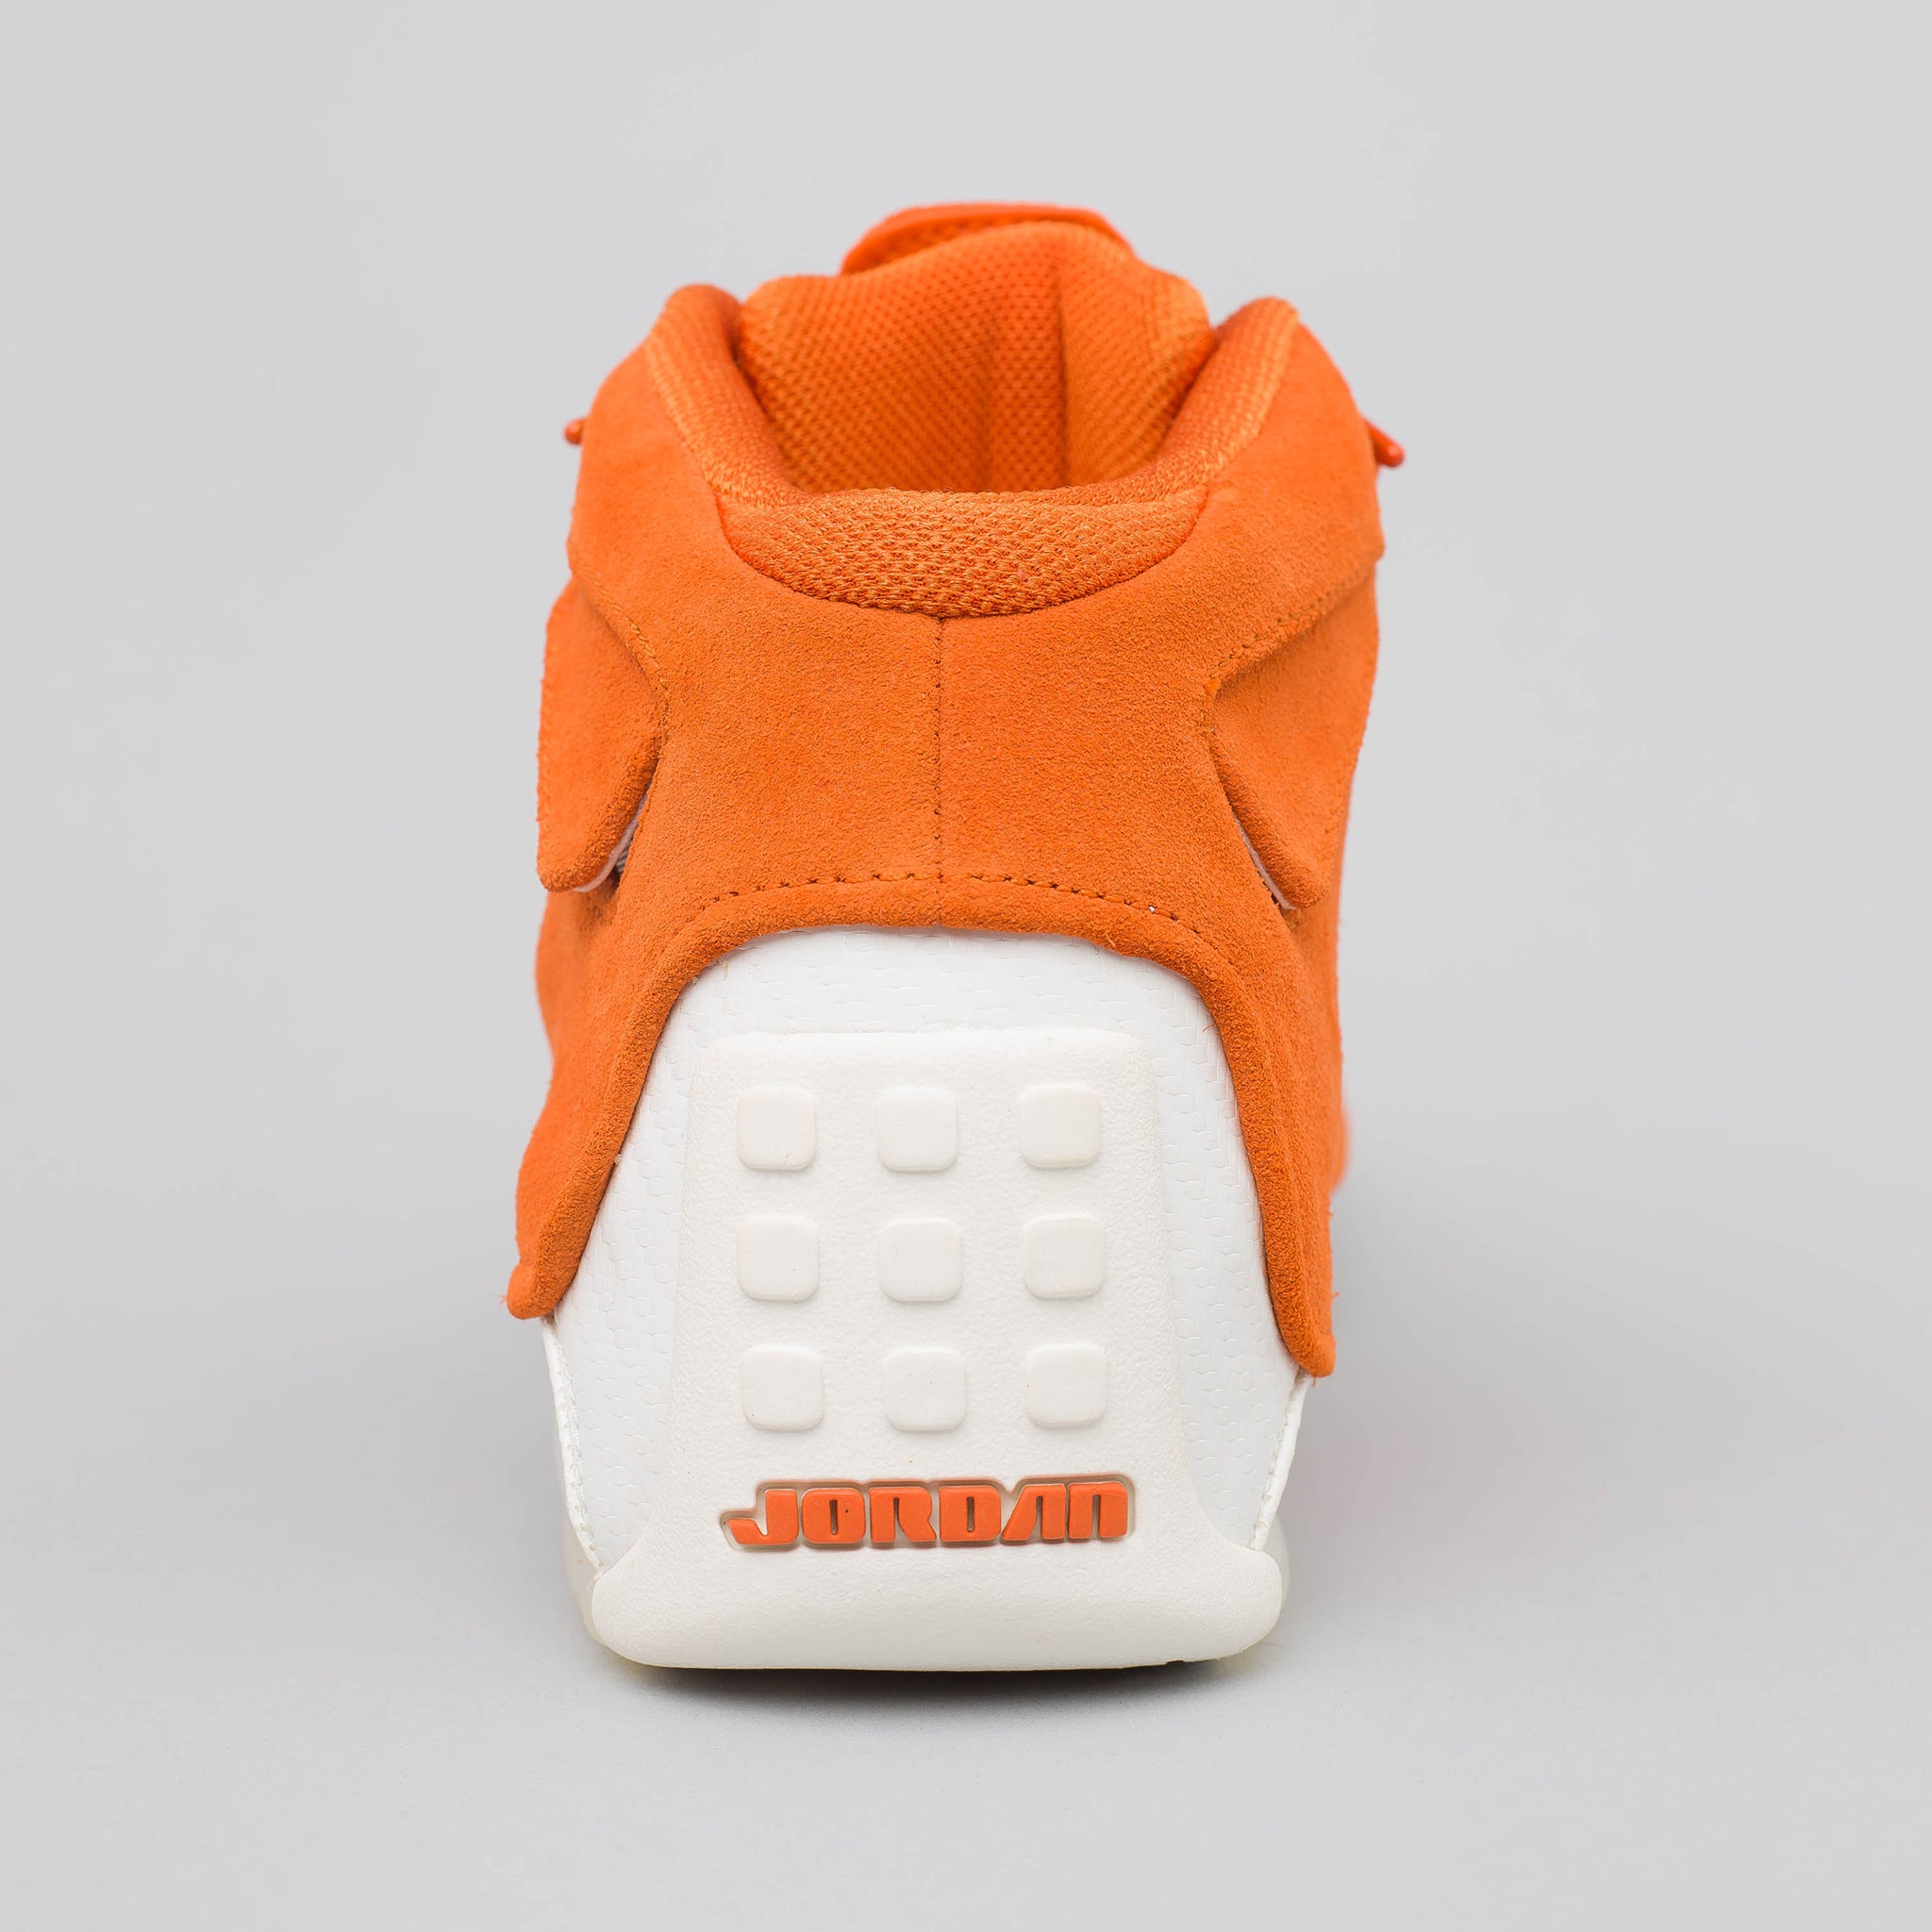 Air Jordan 18 Retro in Campfire Orange